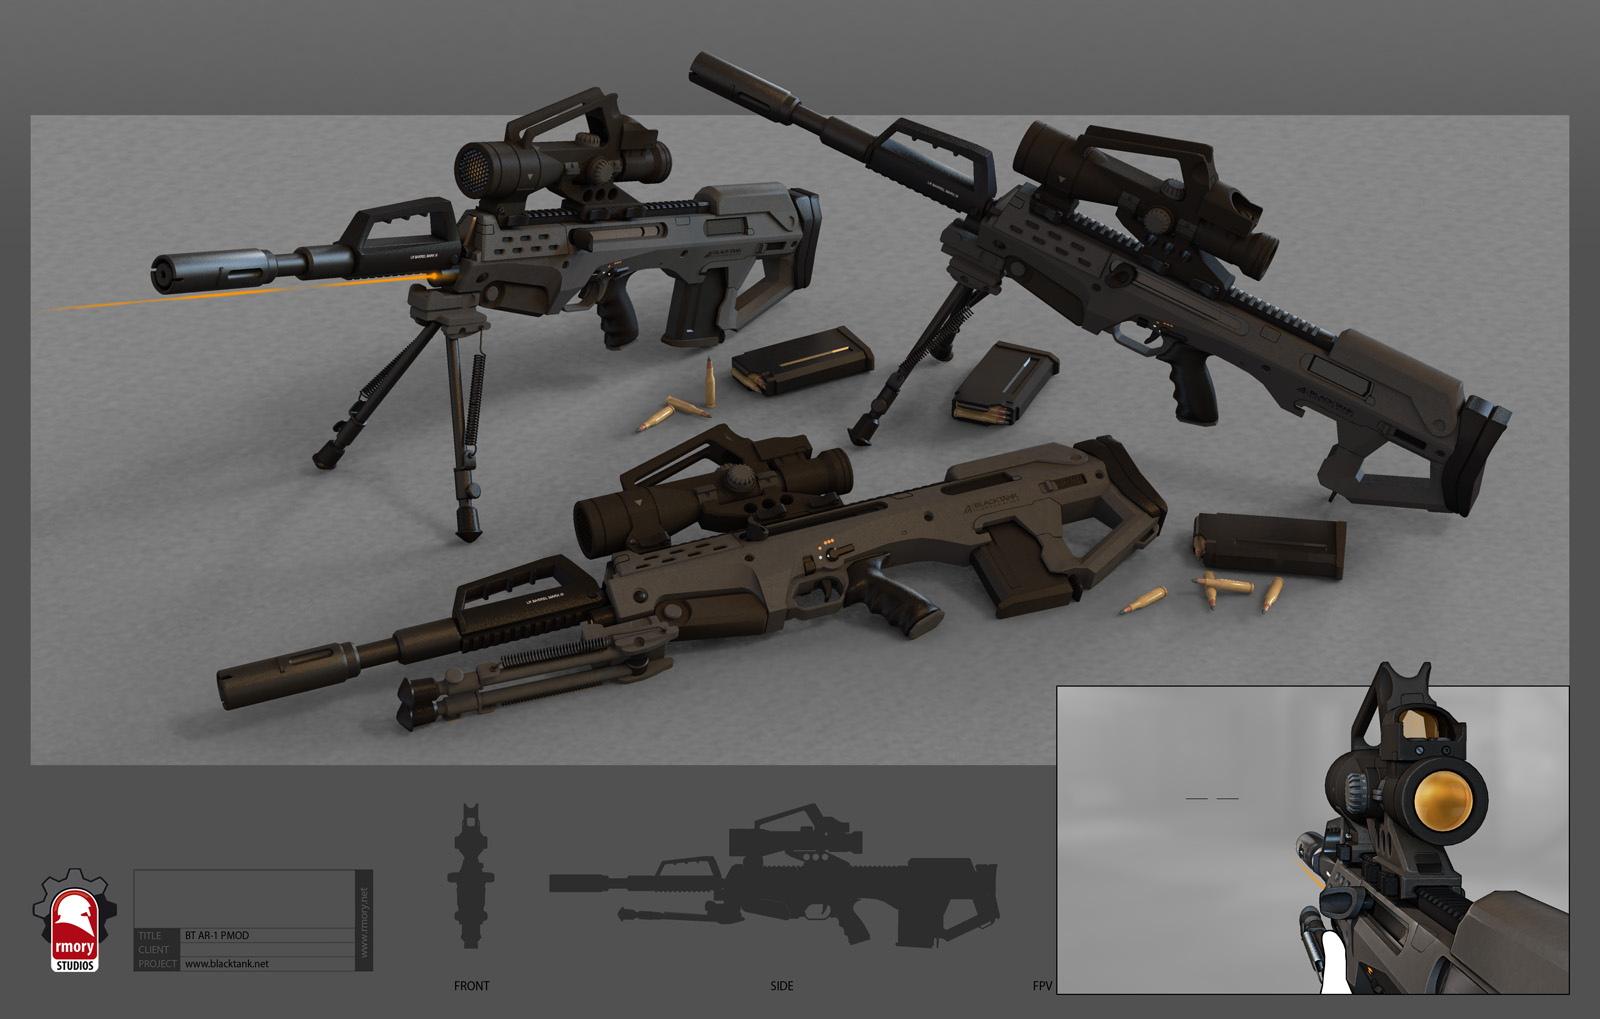 Future Military Weapons Blacktank is set in the near